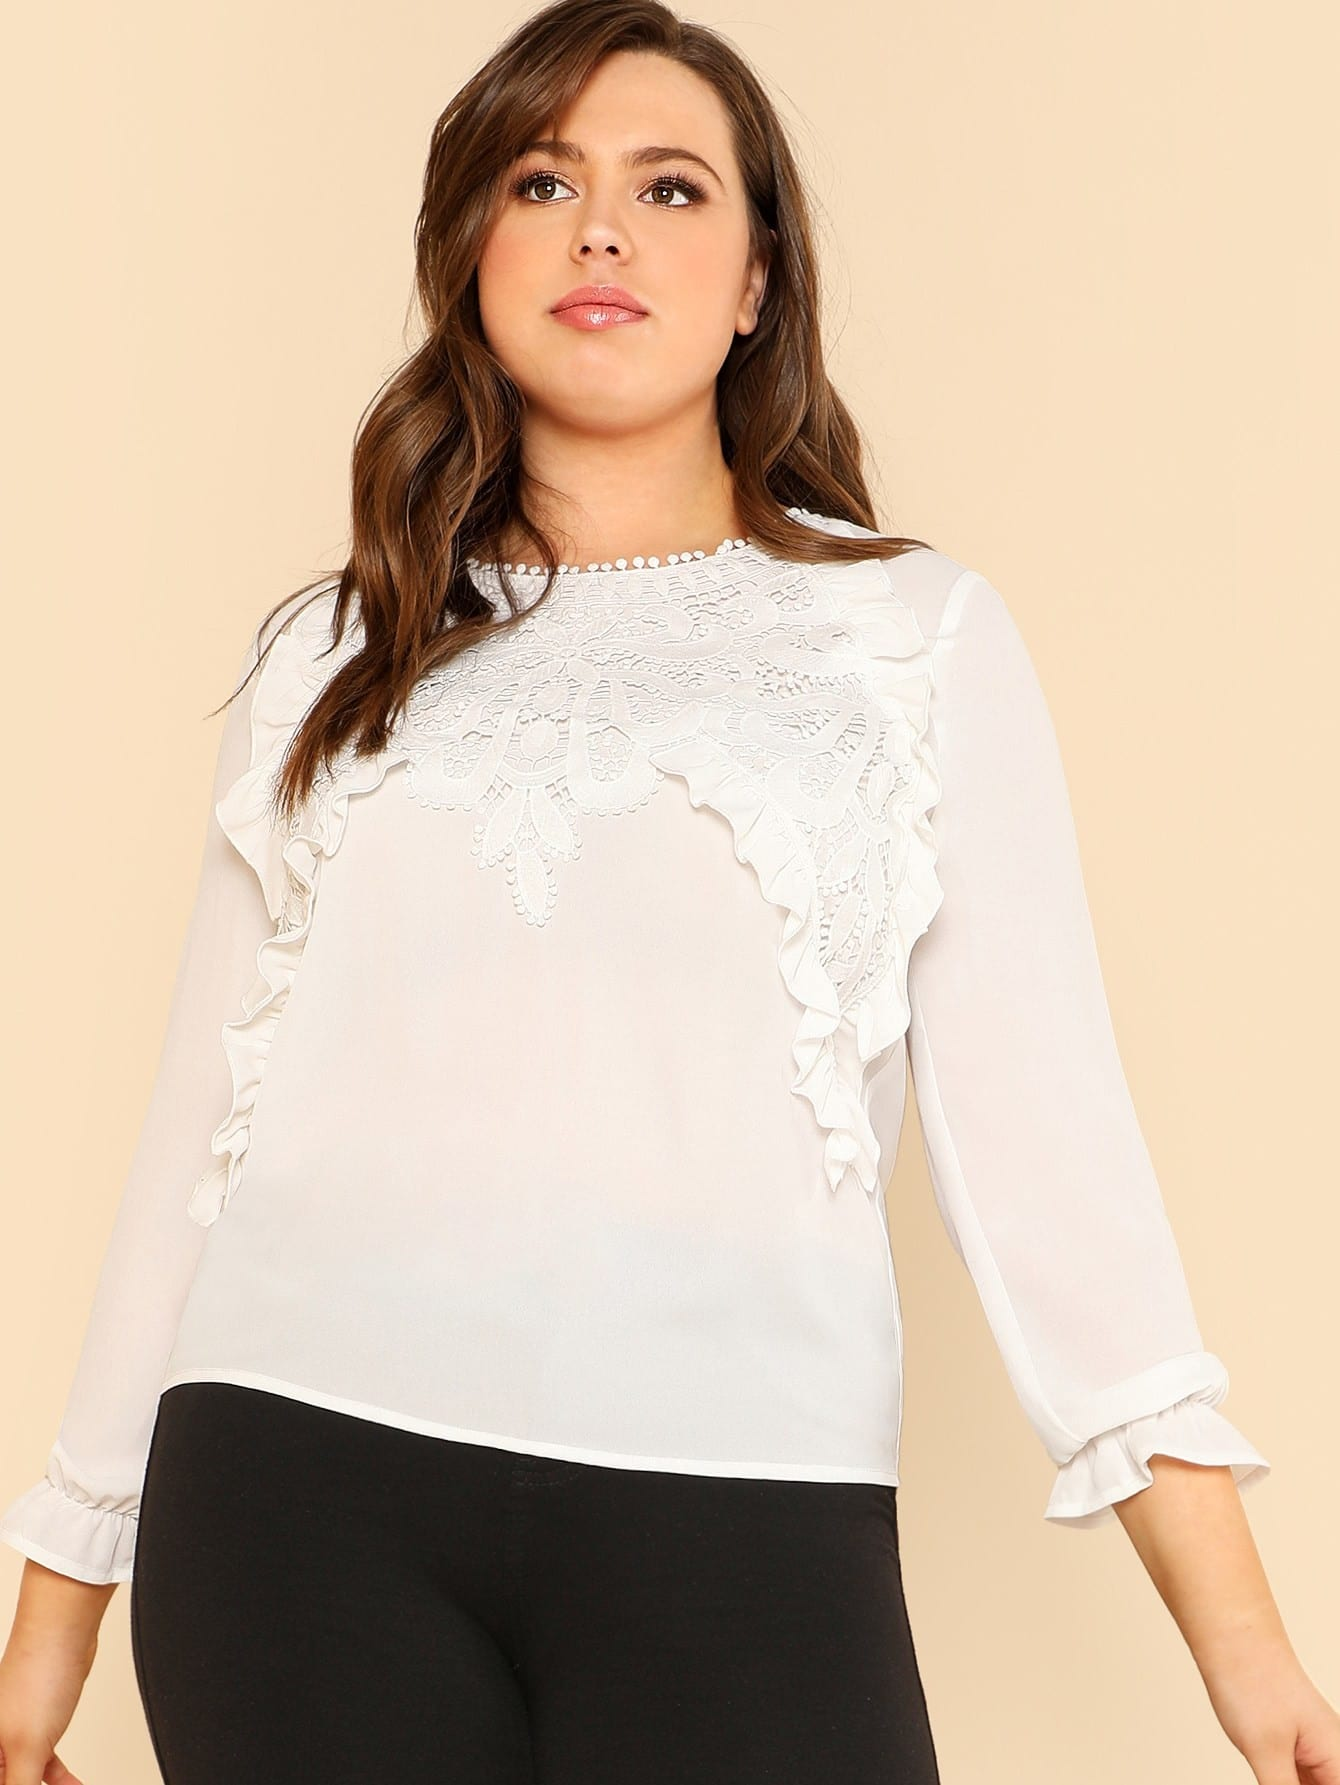 Applique And Ruffle Detail Top patchwork ruffle detail top